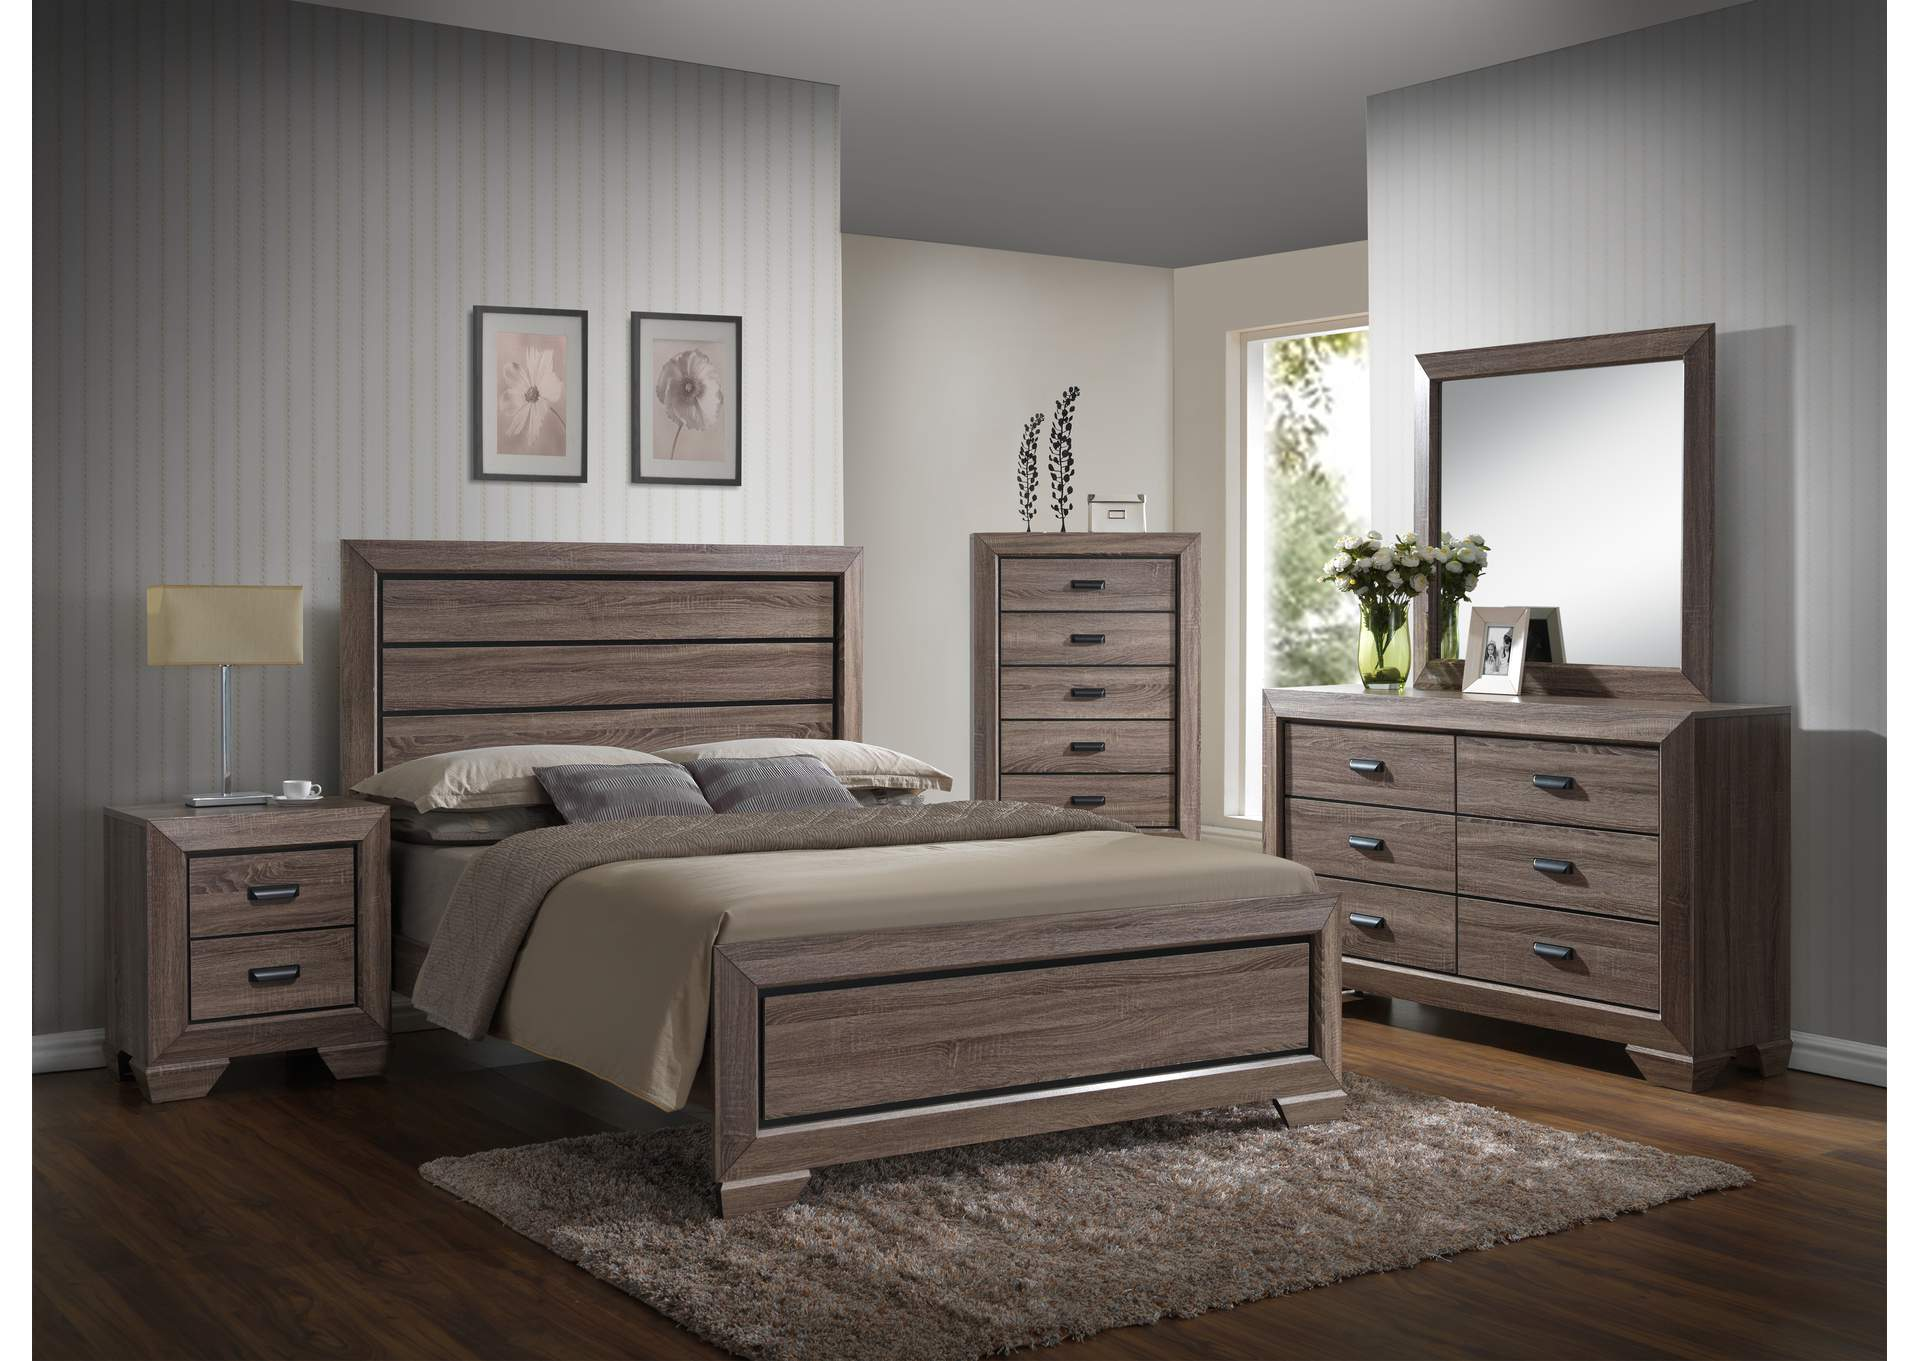 Sand Panel Queen 4 Piece Bedroom Set W/ Nightstand, Dresser & Mirror,Global Trading